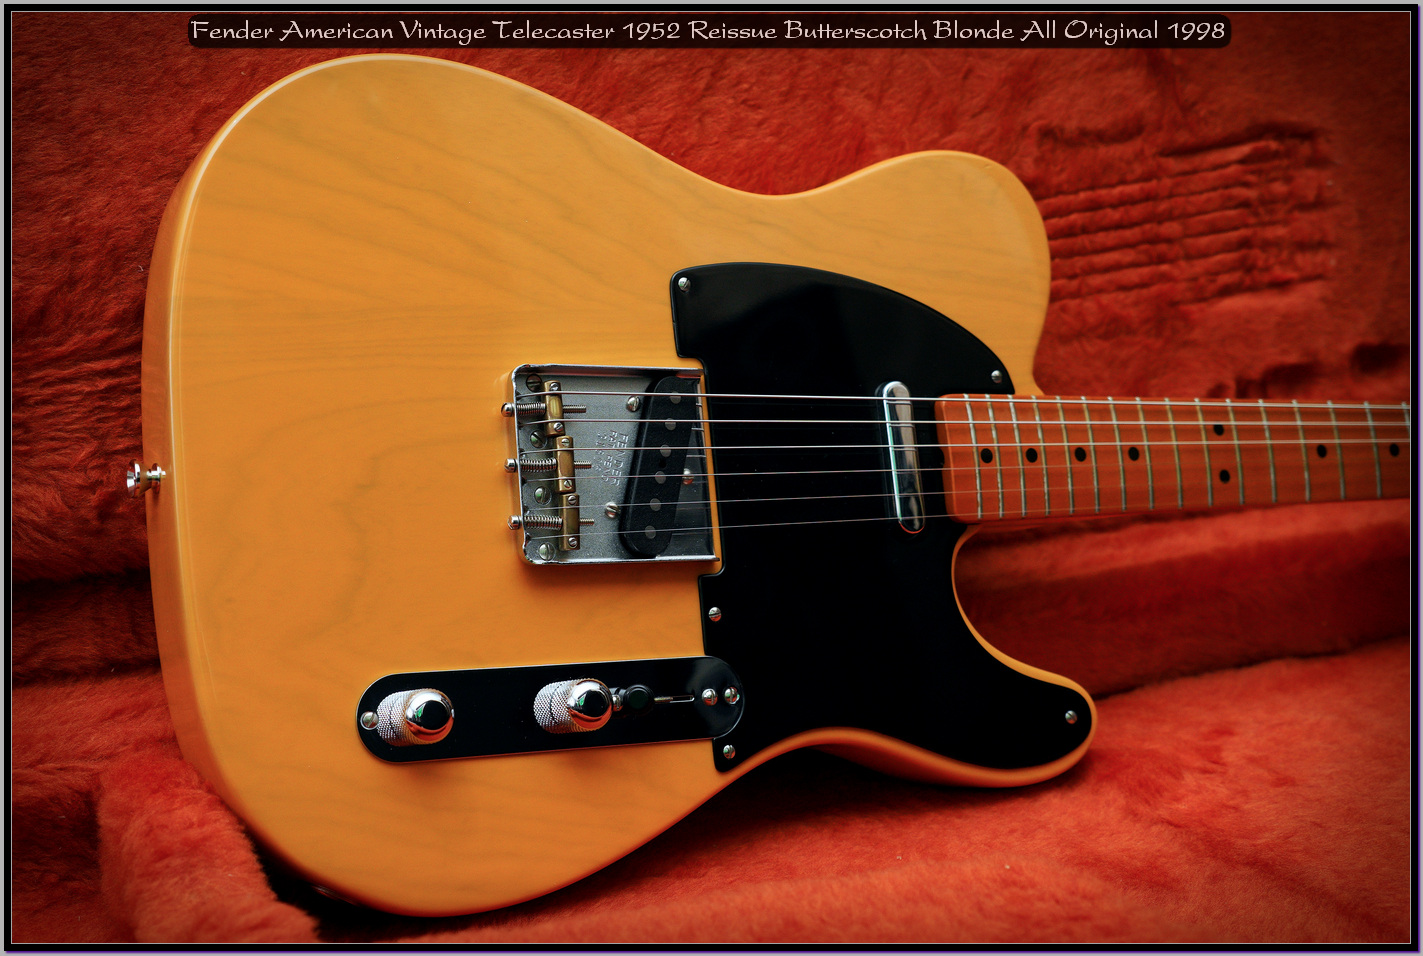 Fender American Vintage Telecaster 1952 Reissue Butterscotch Blonde All Original 1998 15_x1440.jpg